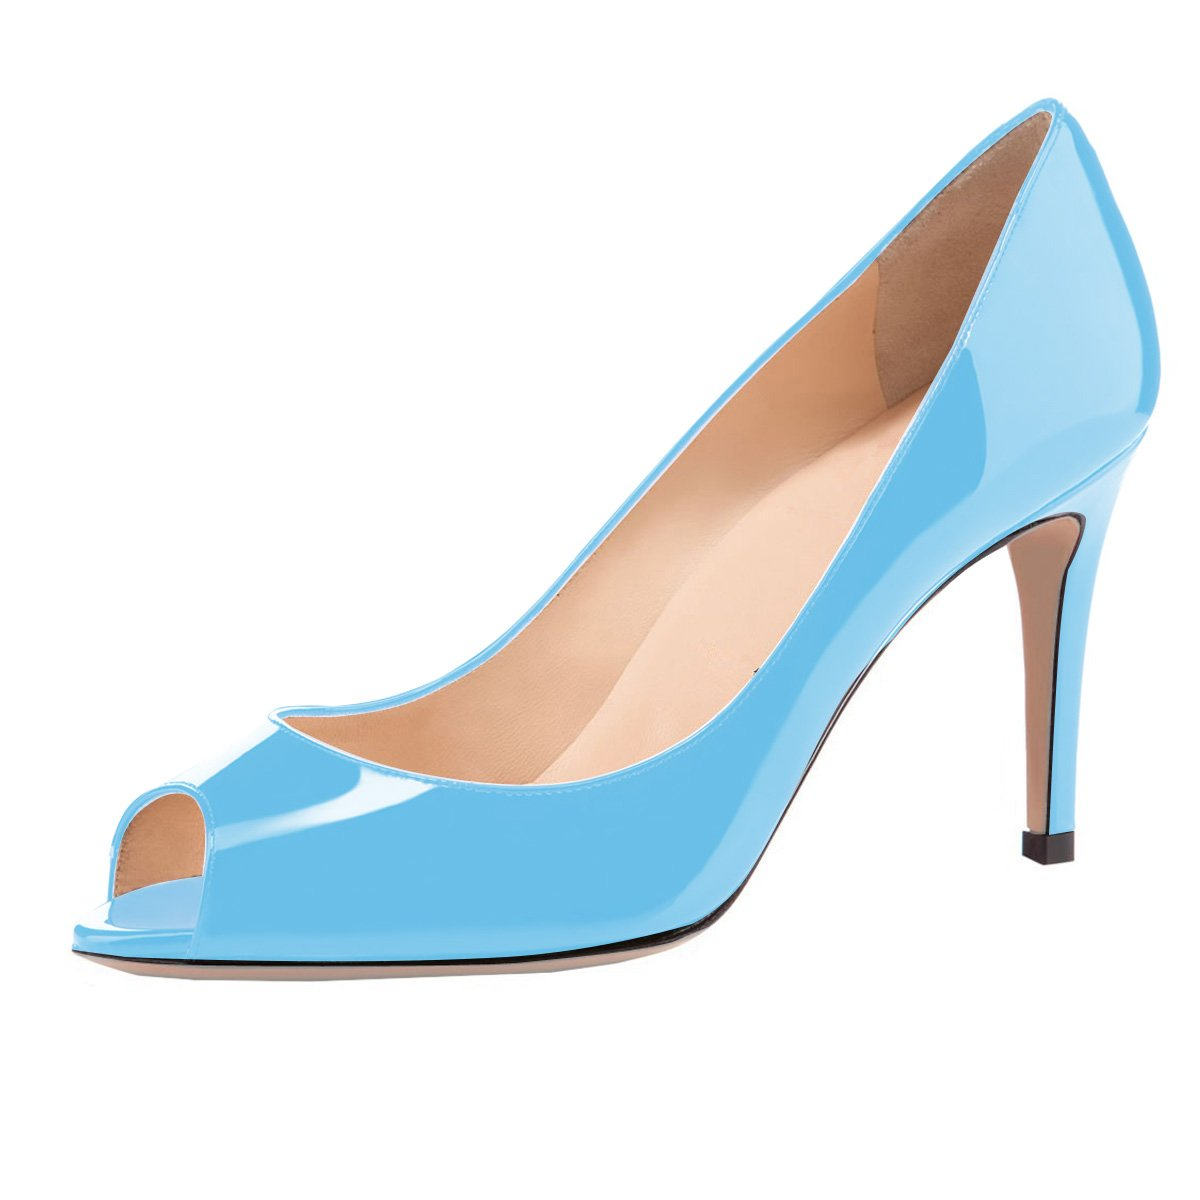 Eldof Women Peep Toe Pumps Mid-Heel Pumps Formal Wedding Bridal Classic Heel Open Toe Stiletto B07F1N354Q 5 B(M) US|Blue